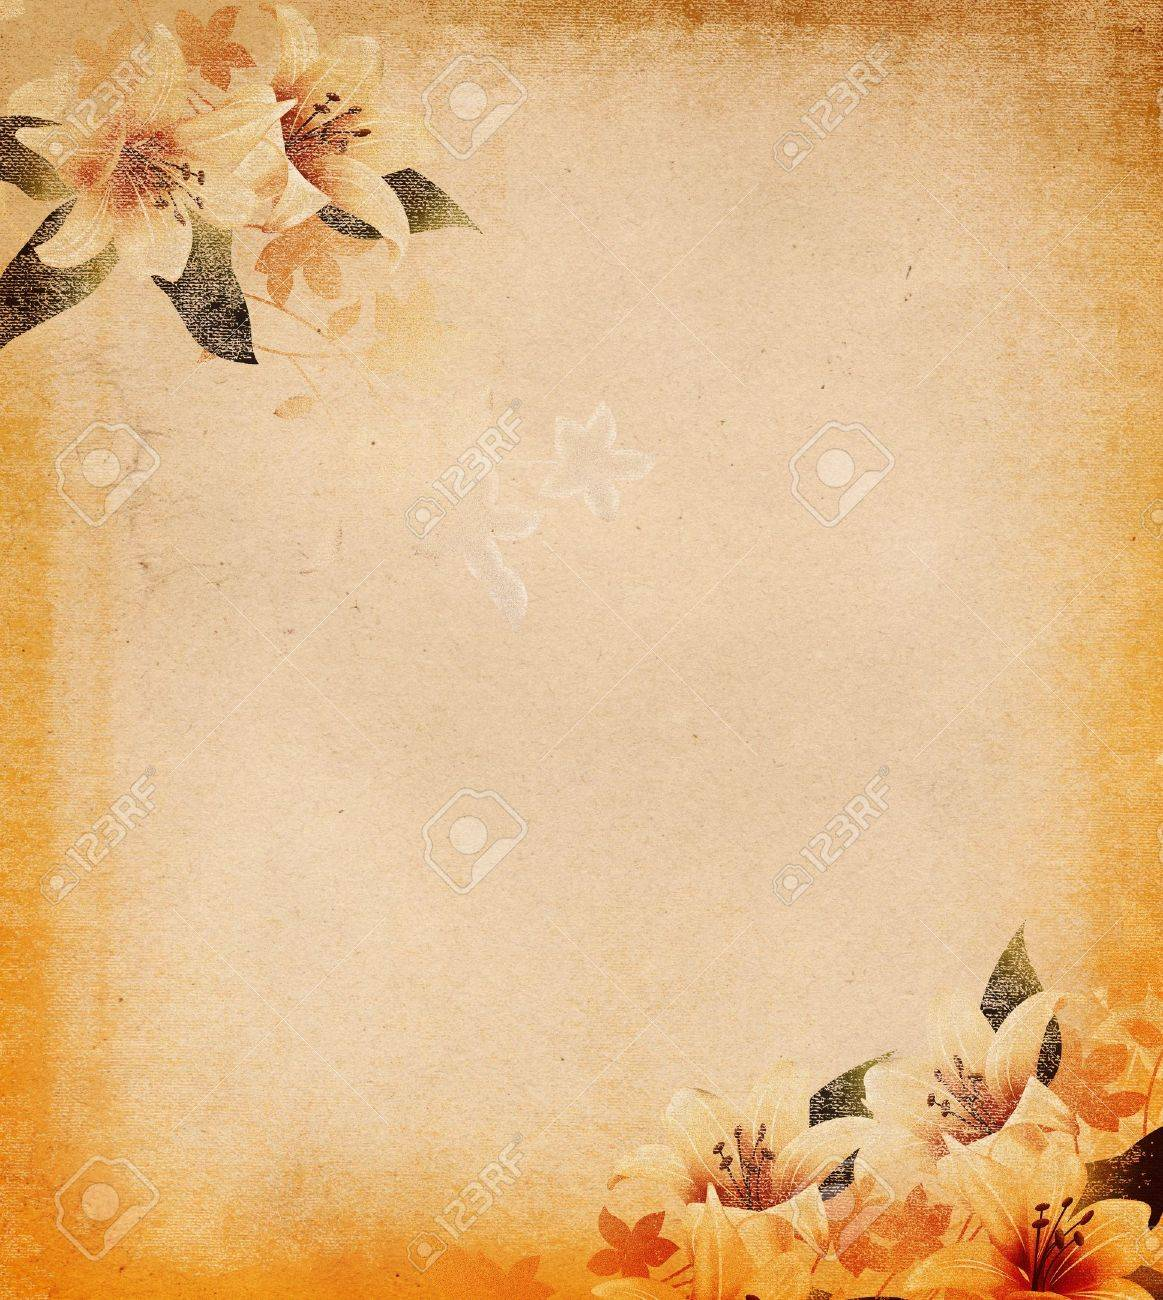 Grunge paper background with floral decoration Stock Photo - 14168822